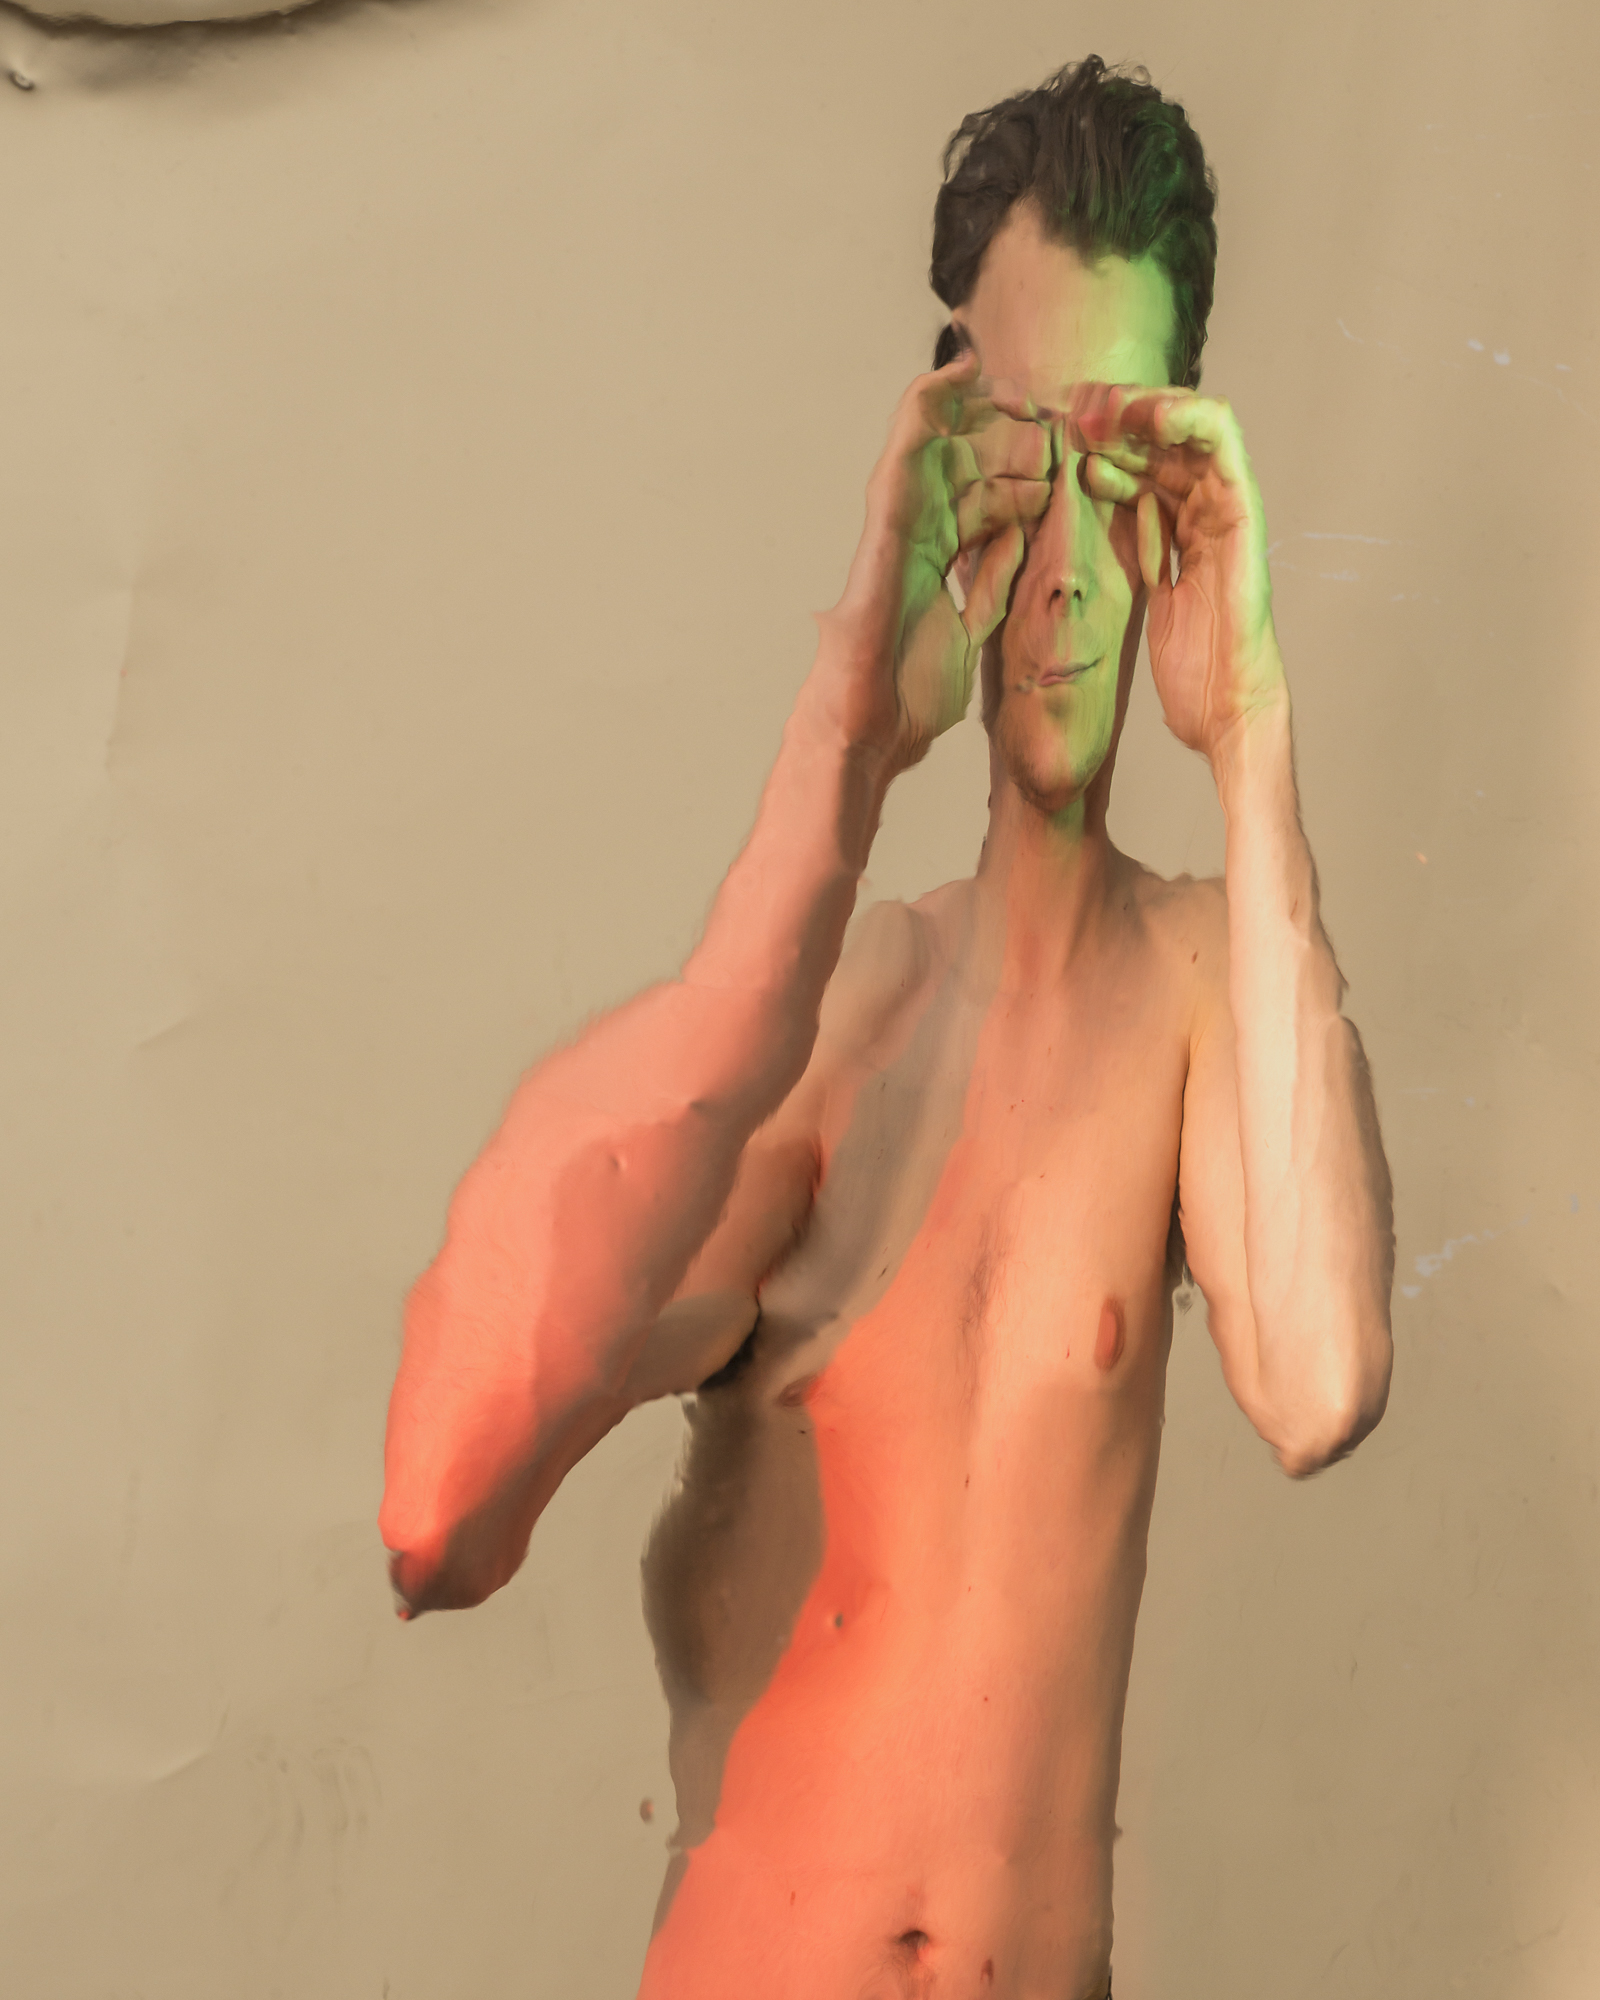 Distorted Photographs of Nick by Zach Hyman